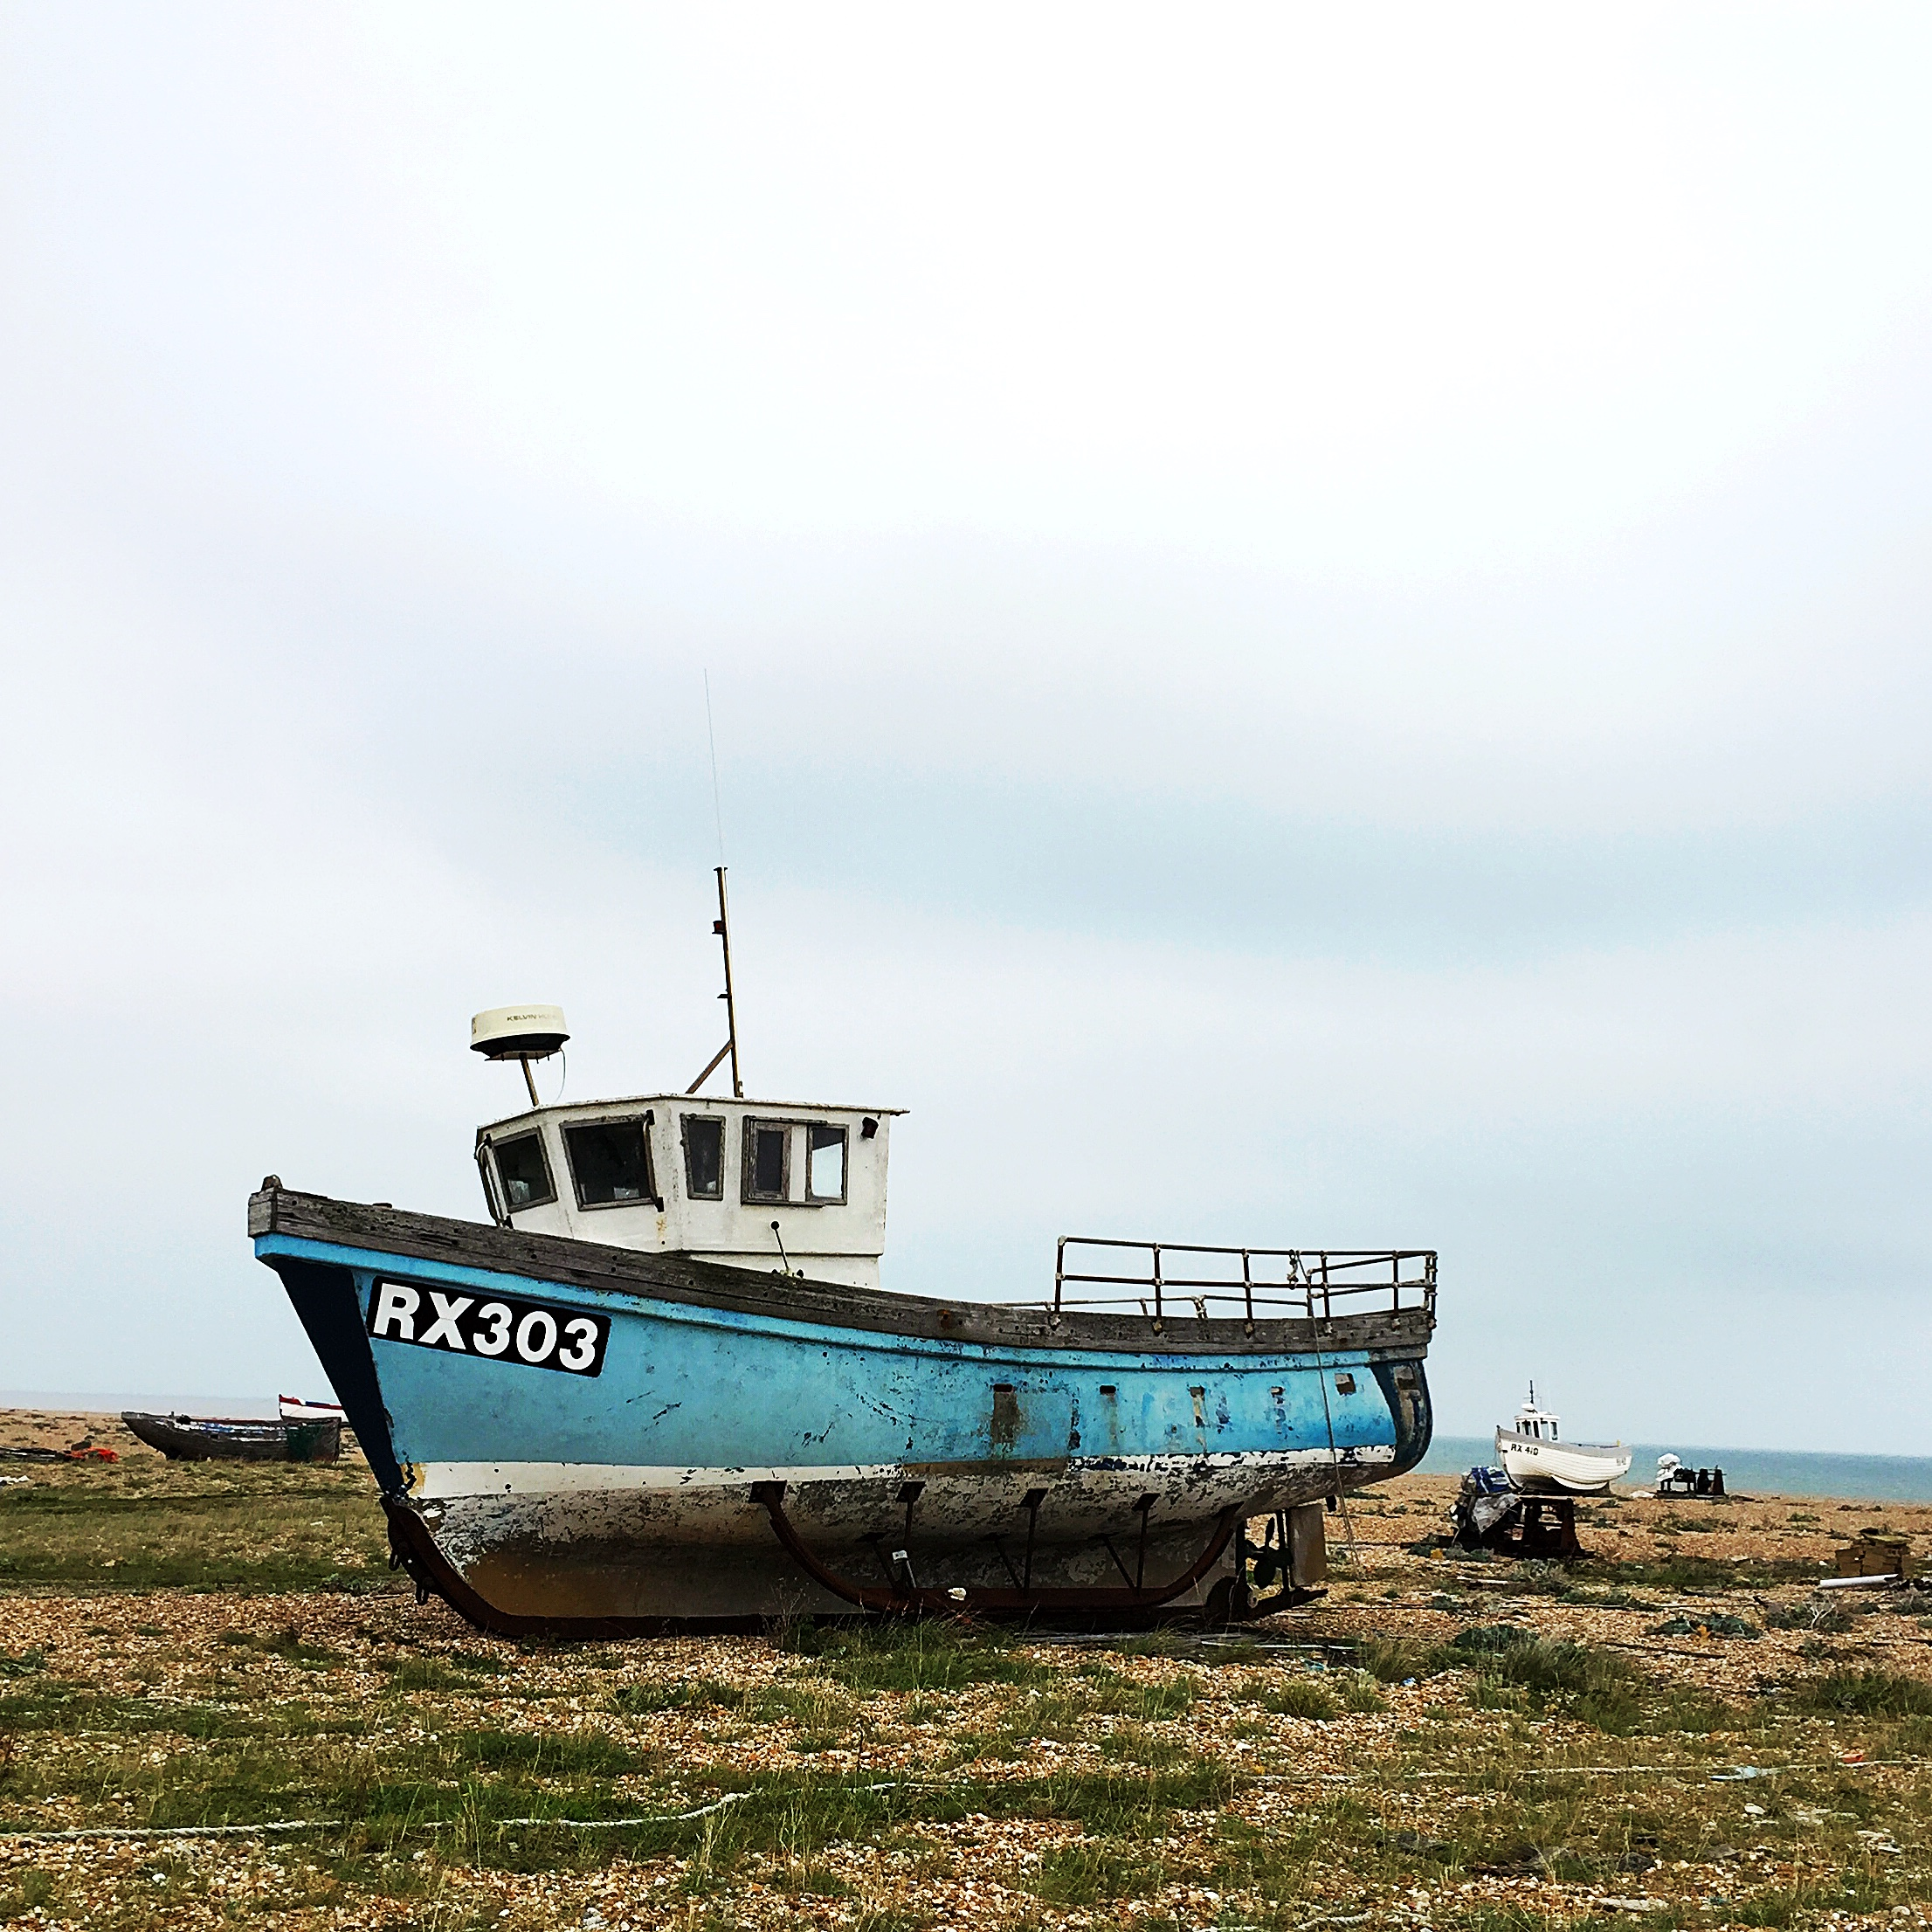 dungeness-shipwreck-boats-travel-blogger-blog-beach-british-theinkcloset.JPG